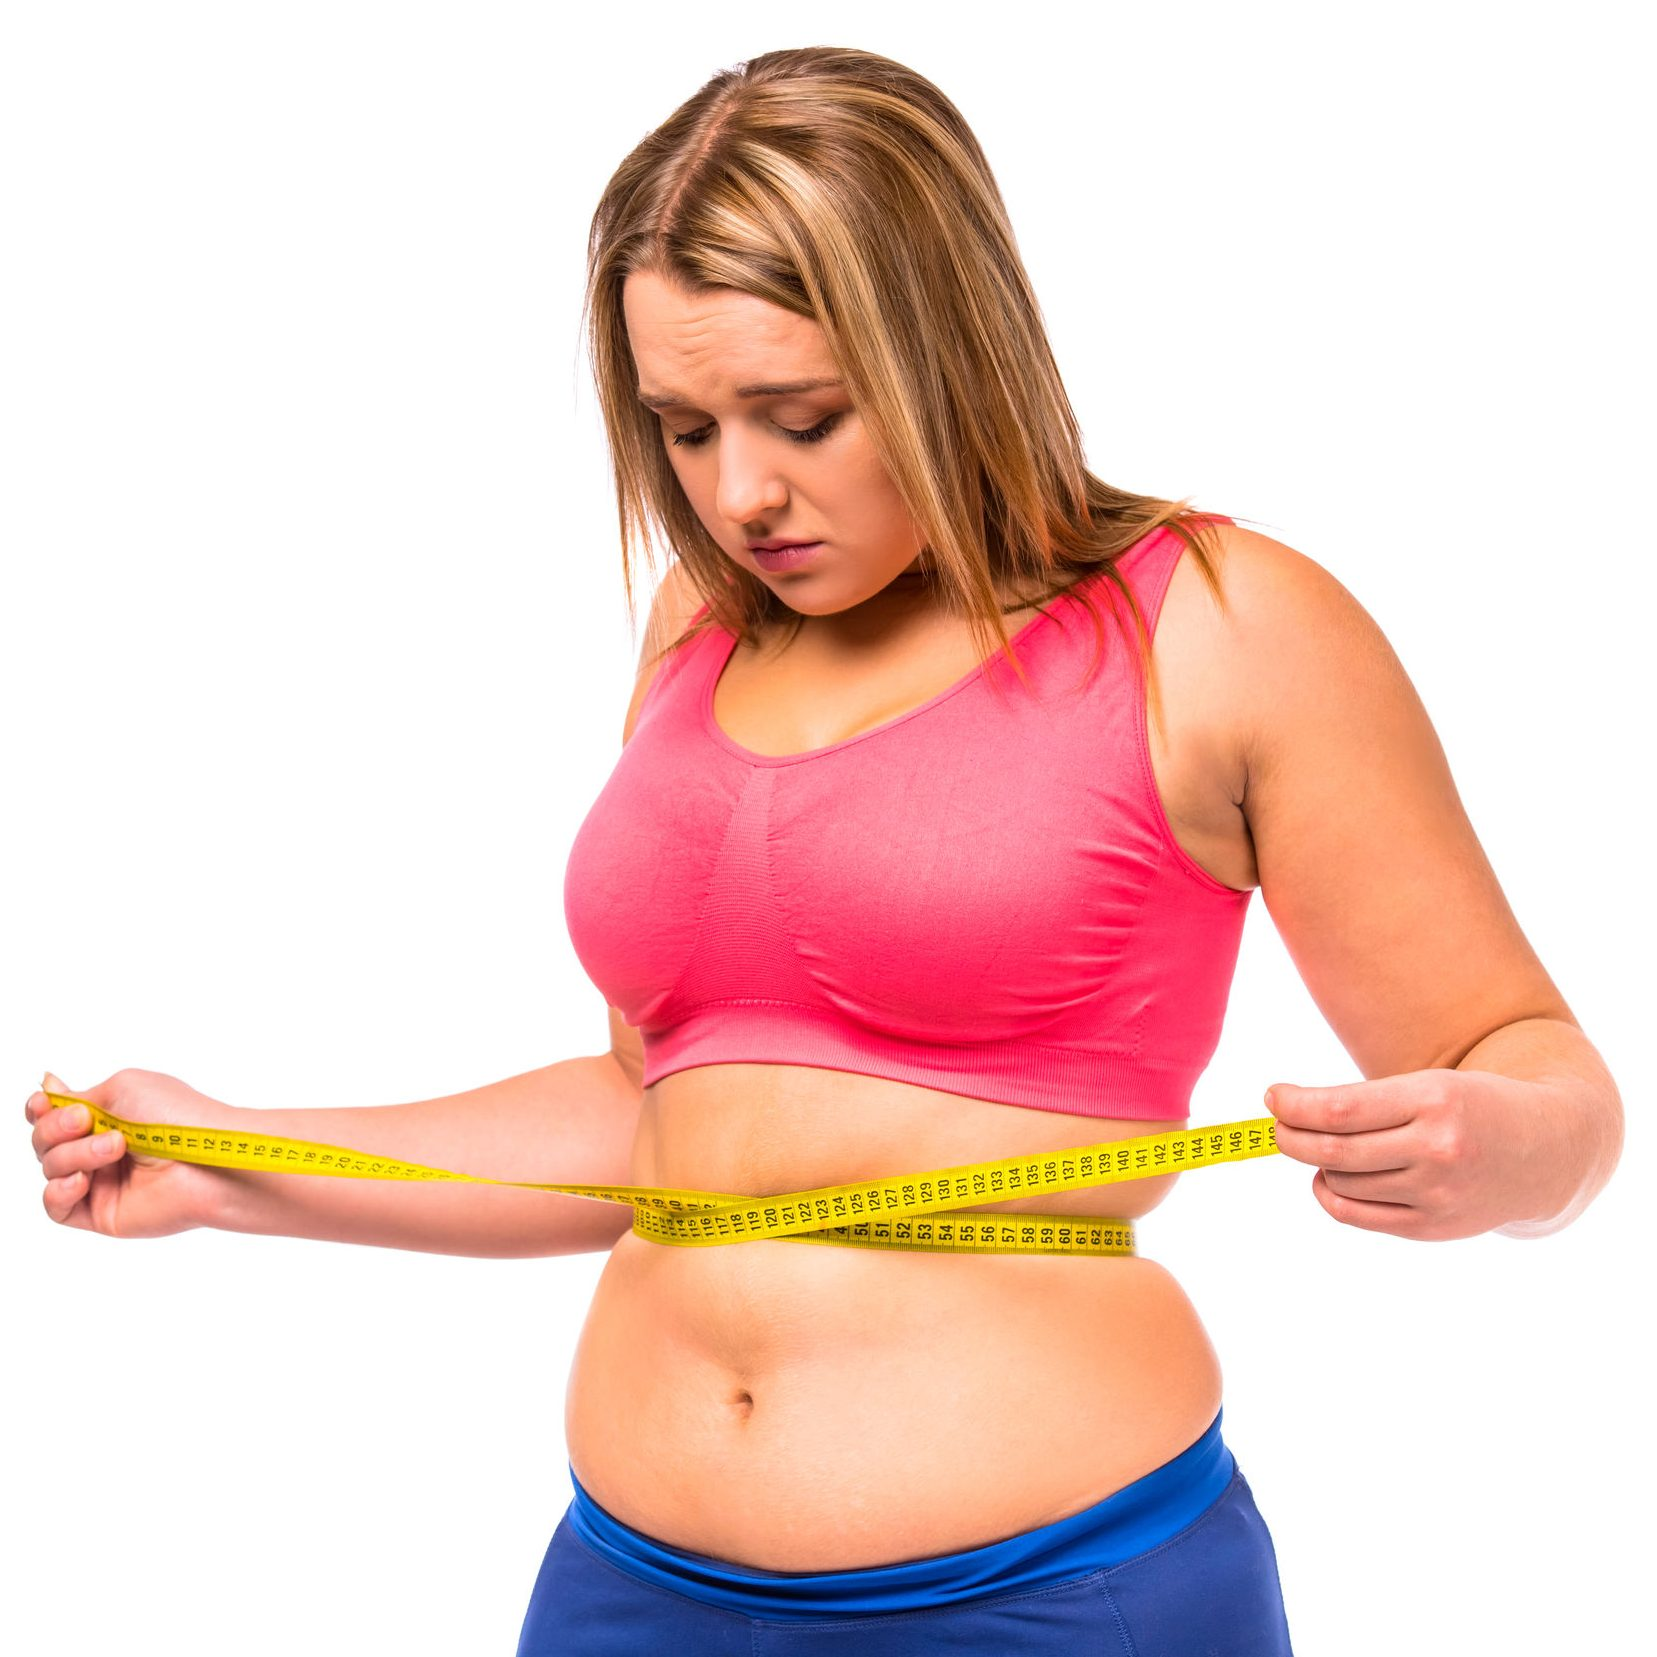 47971154 - fat woman unhappy with her body, the diet, the body measures the isolated white background